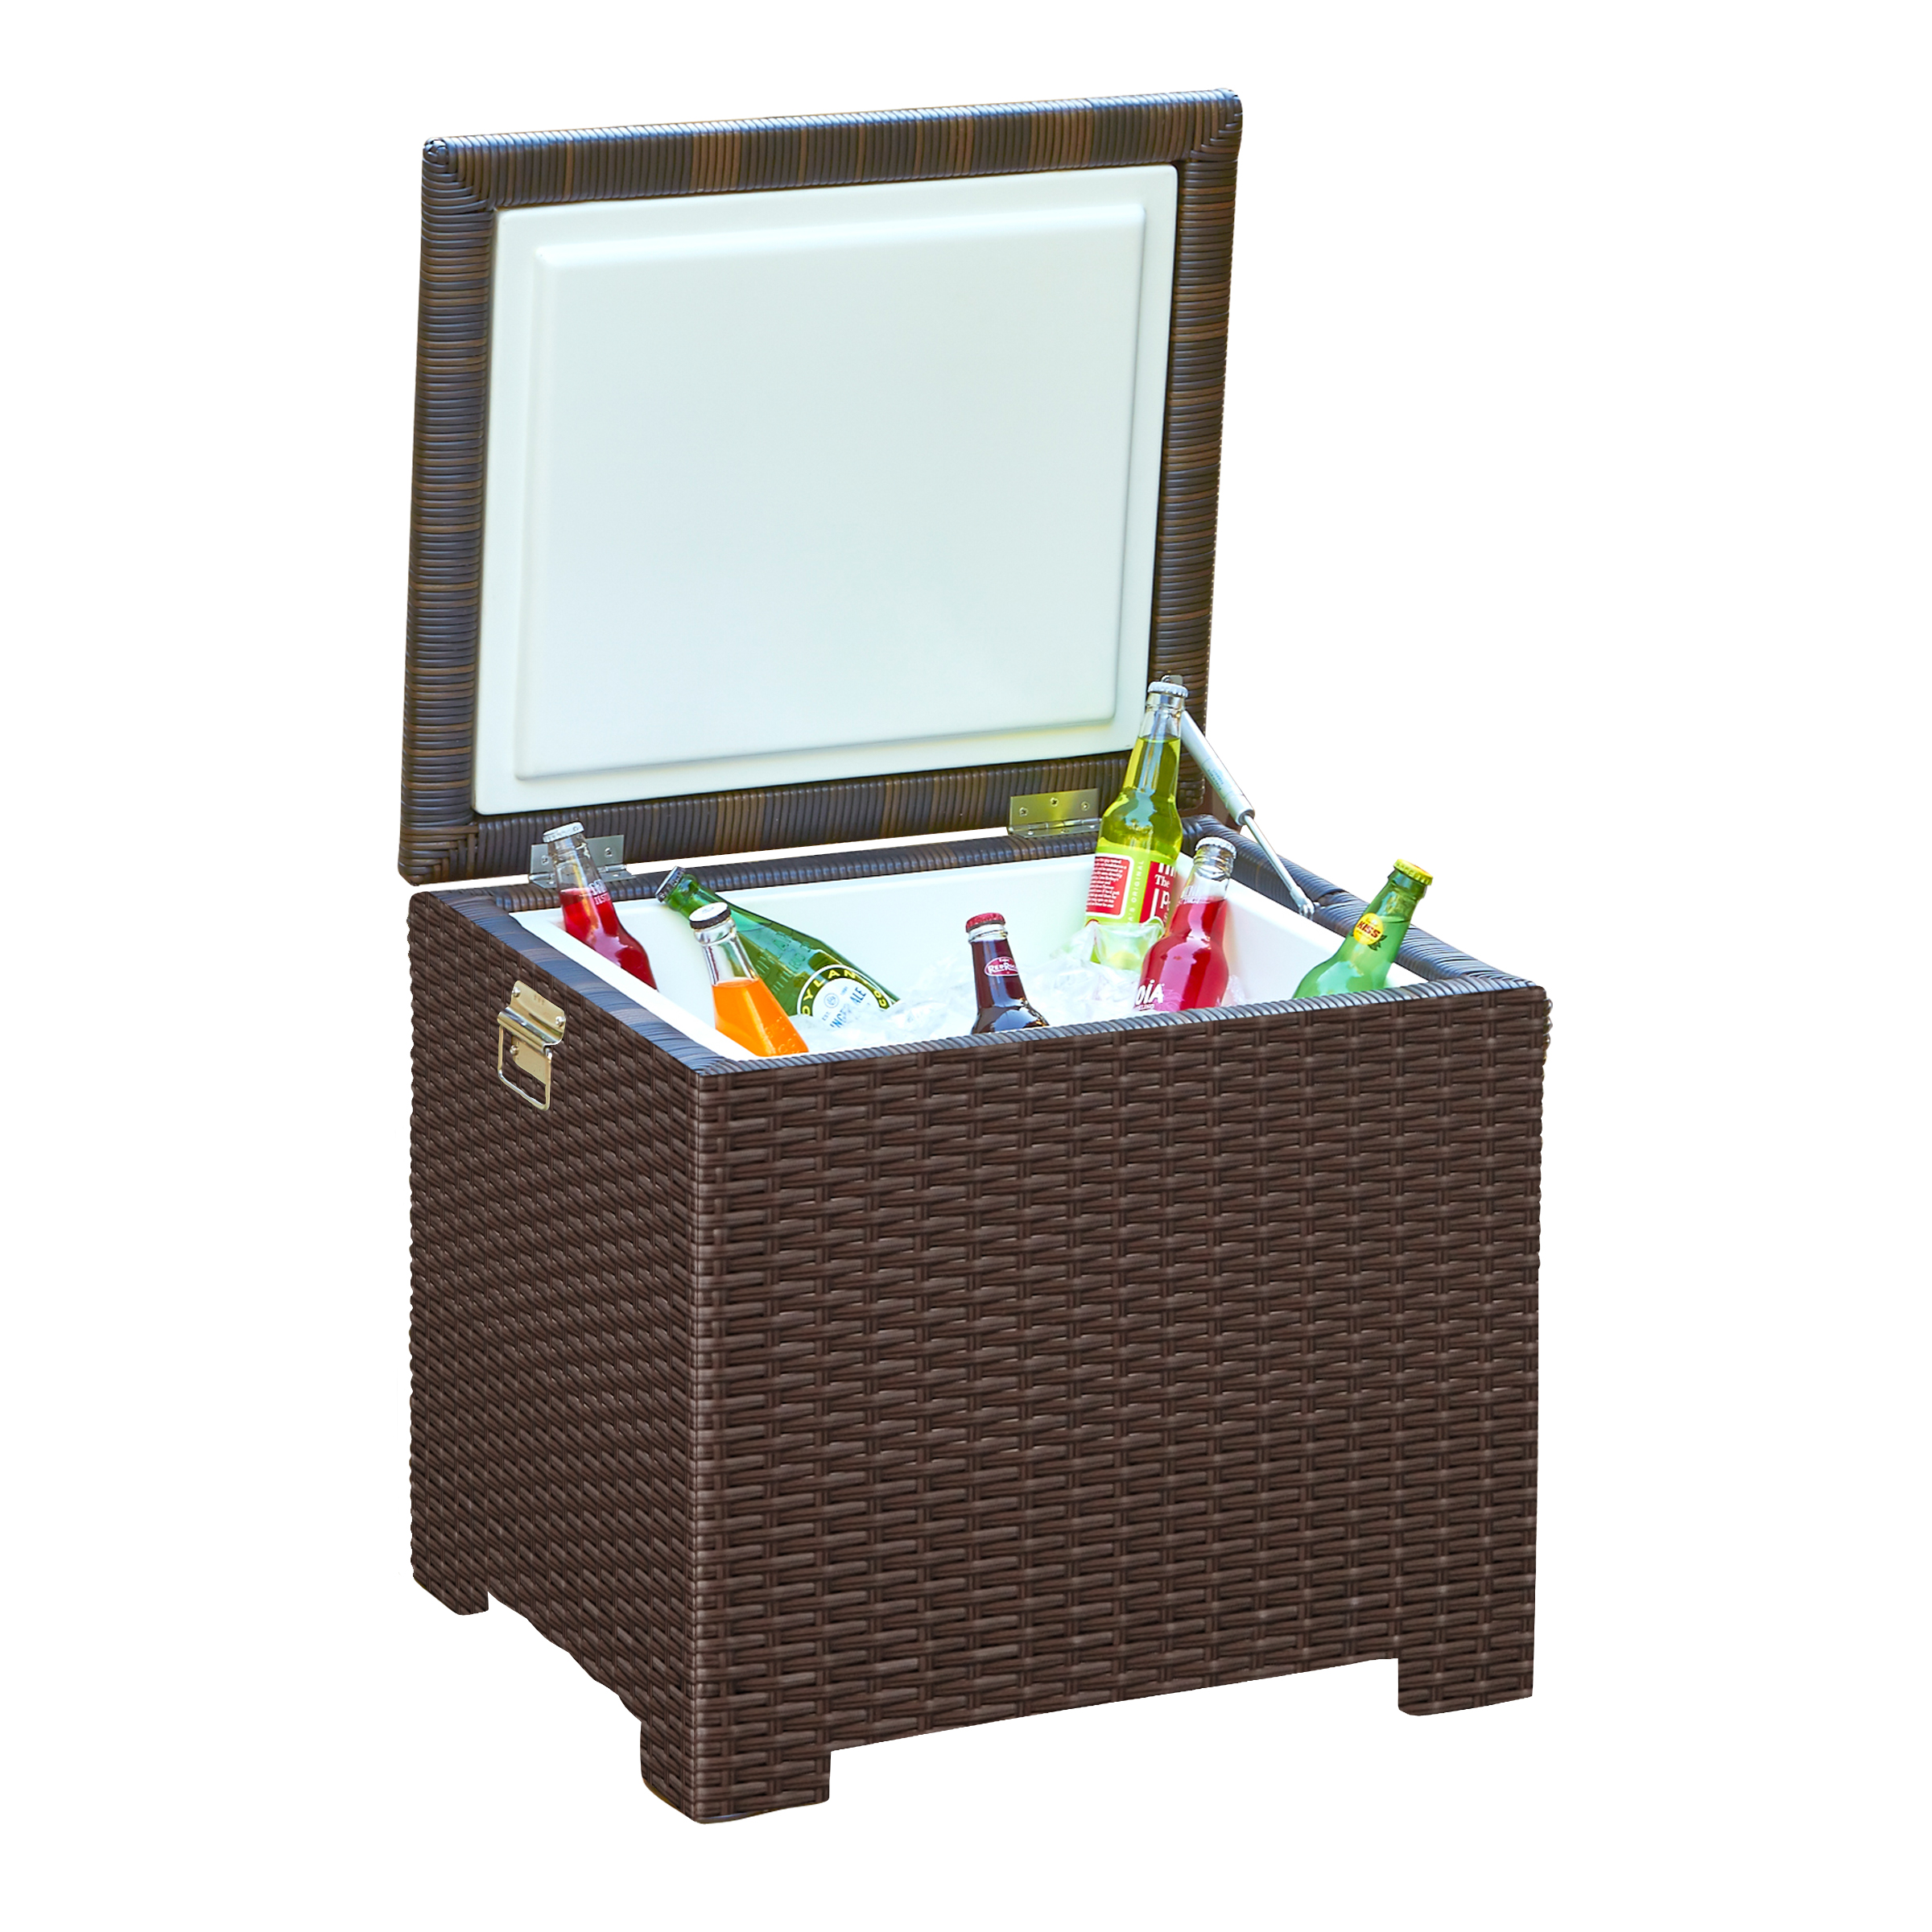 ICE CHEST/END TABLE RC1601 $300.00